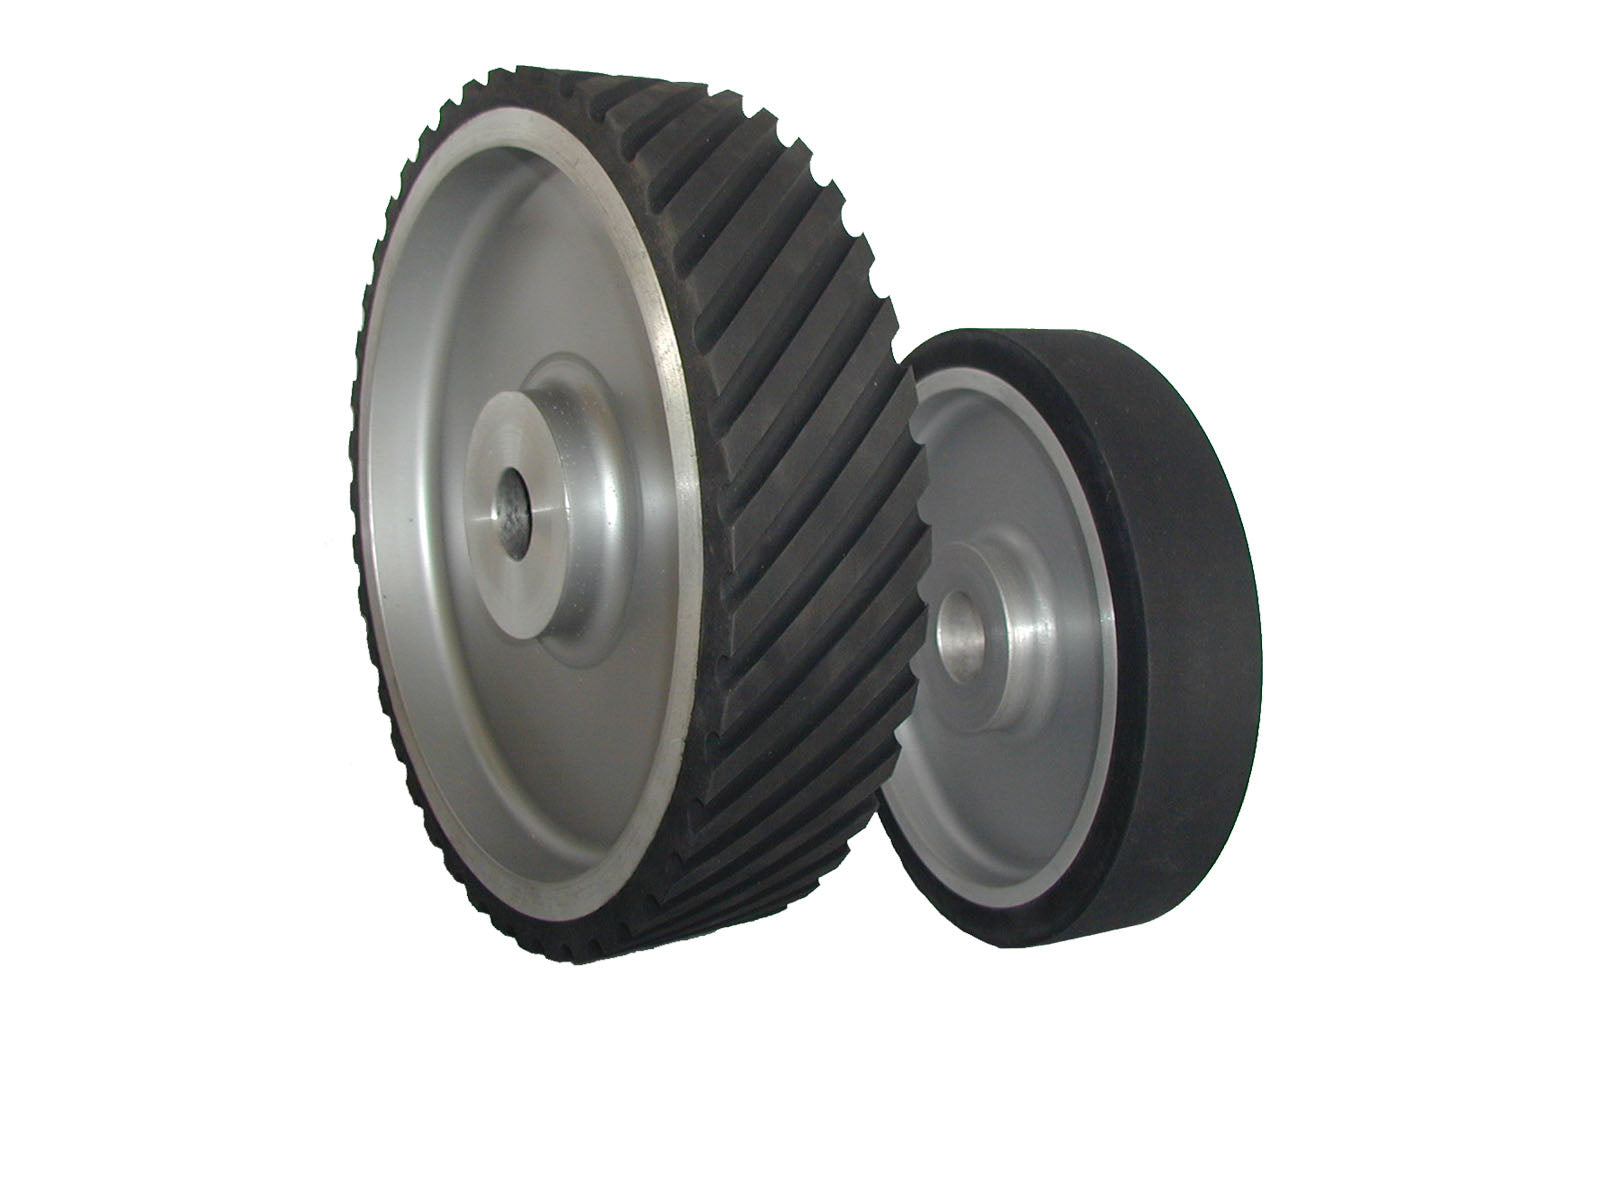 BADER WHEEL 4 X 2 PLAIN OR SERRATED